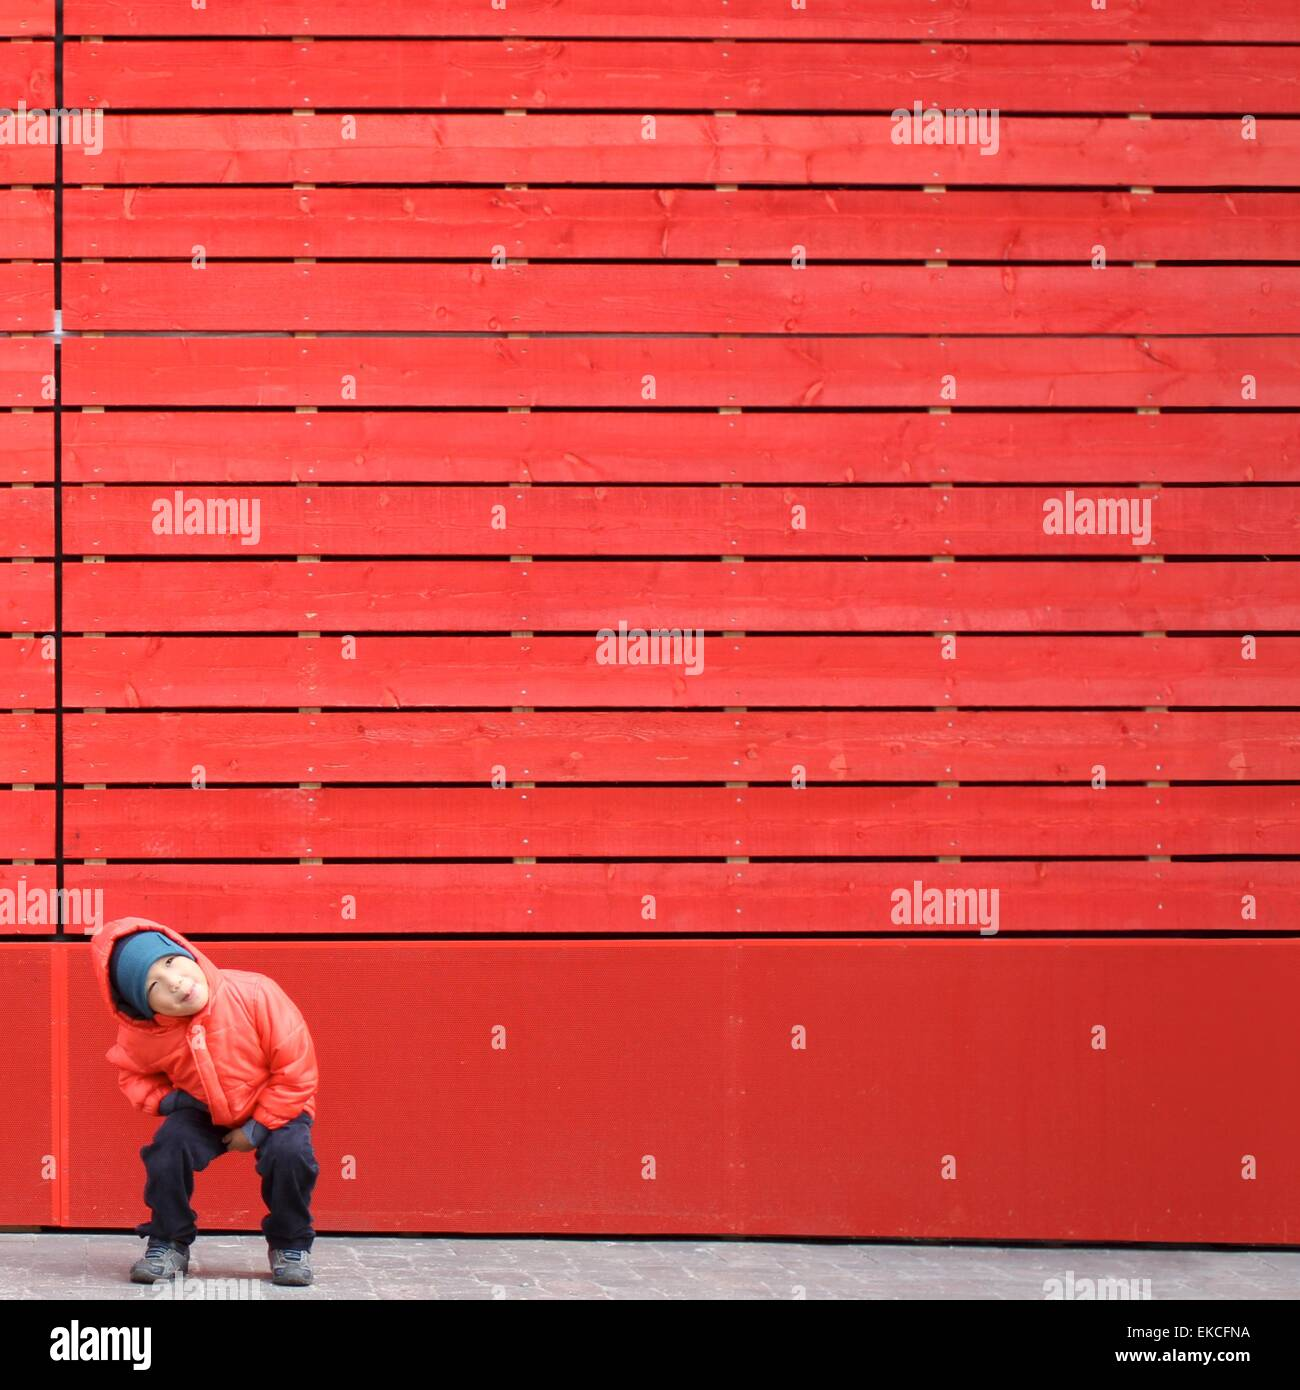 Boy in red playing in front of a red wall - Stock Image